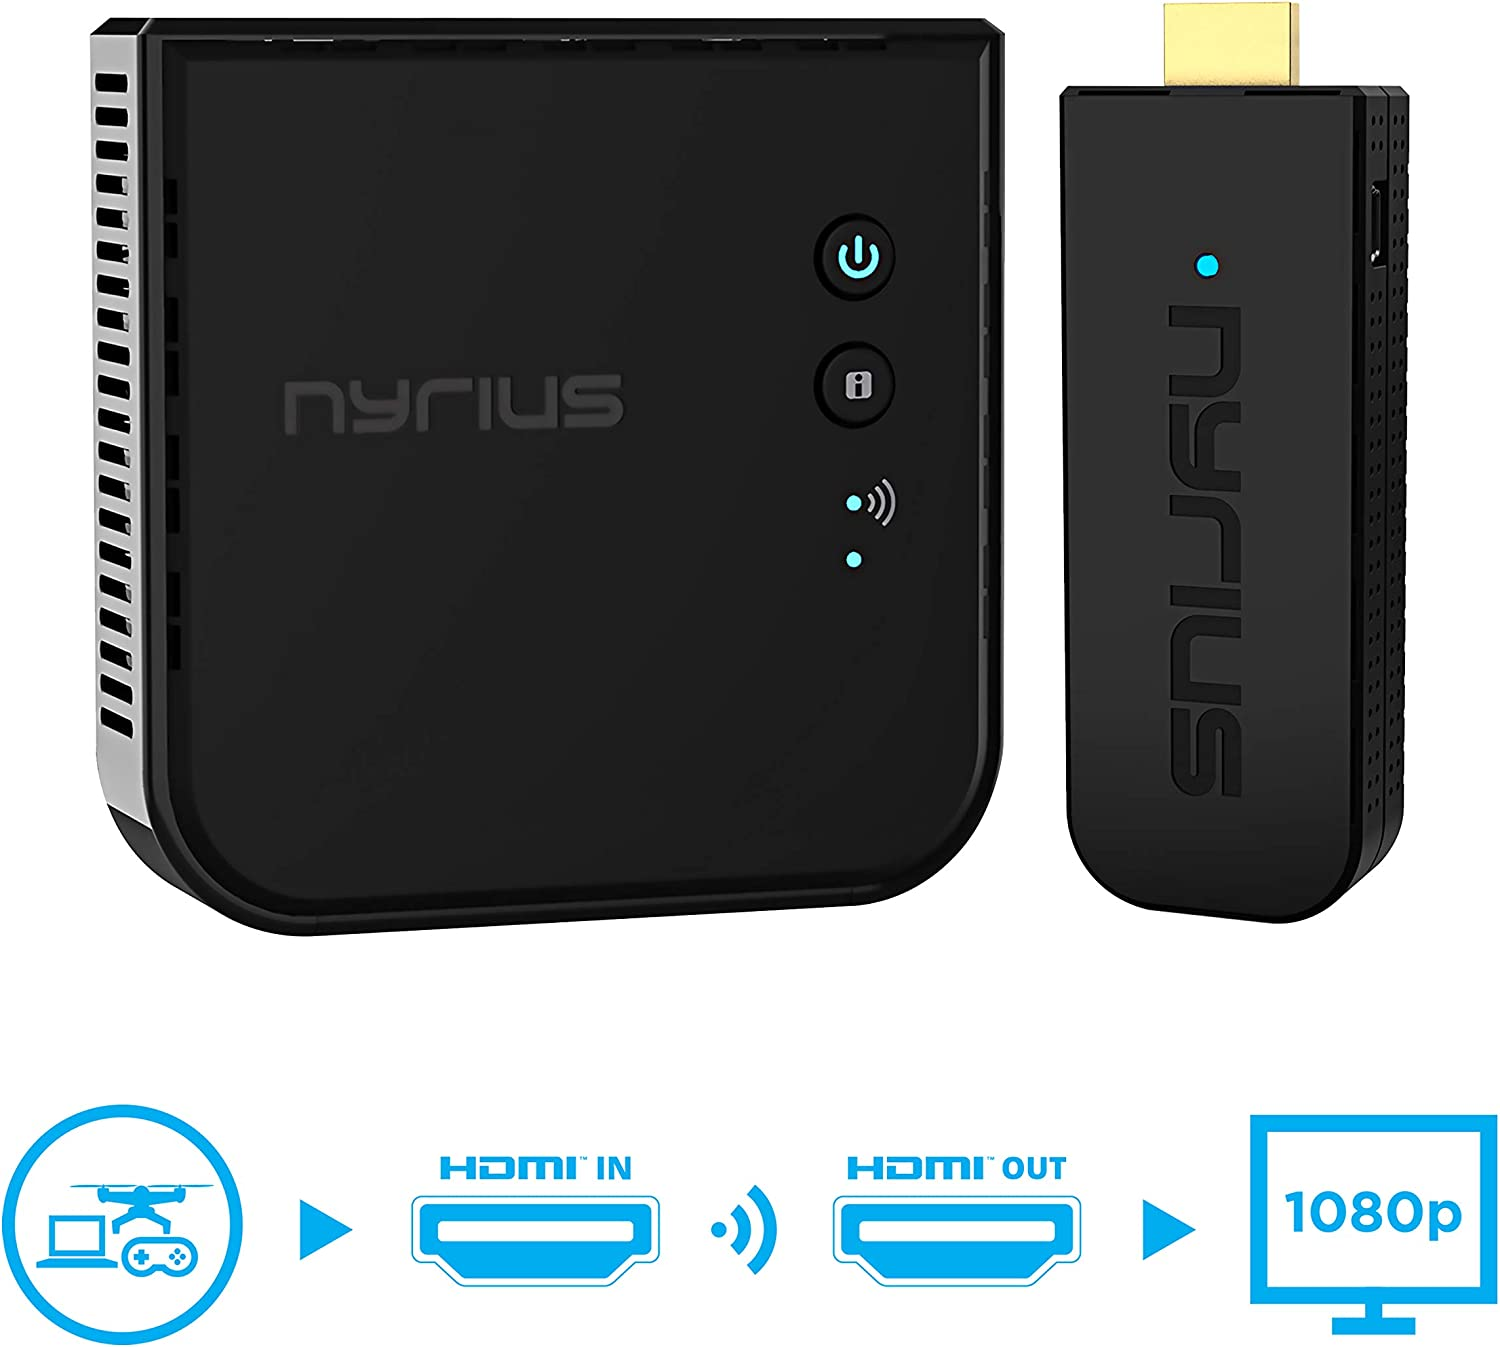 Nyrius Aries Pro+ Wireless HDMI Video Transmitter & Receiver to Stream 1080p Video up to 165ft from Laptop, PC, Cable Box, Game Console, DSLR Camera to a TV, Projector or Boardroom Screen (NPCS650)